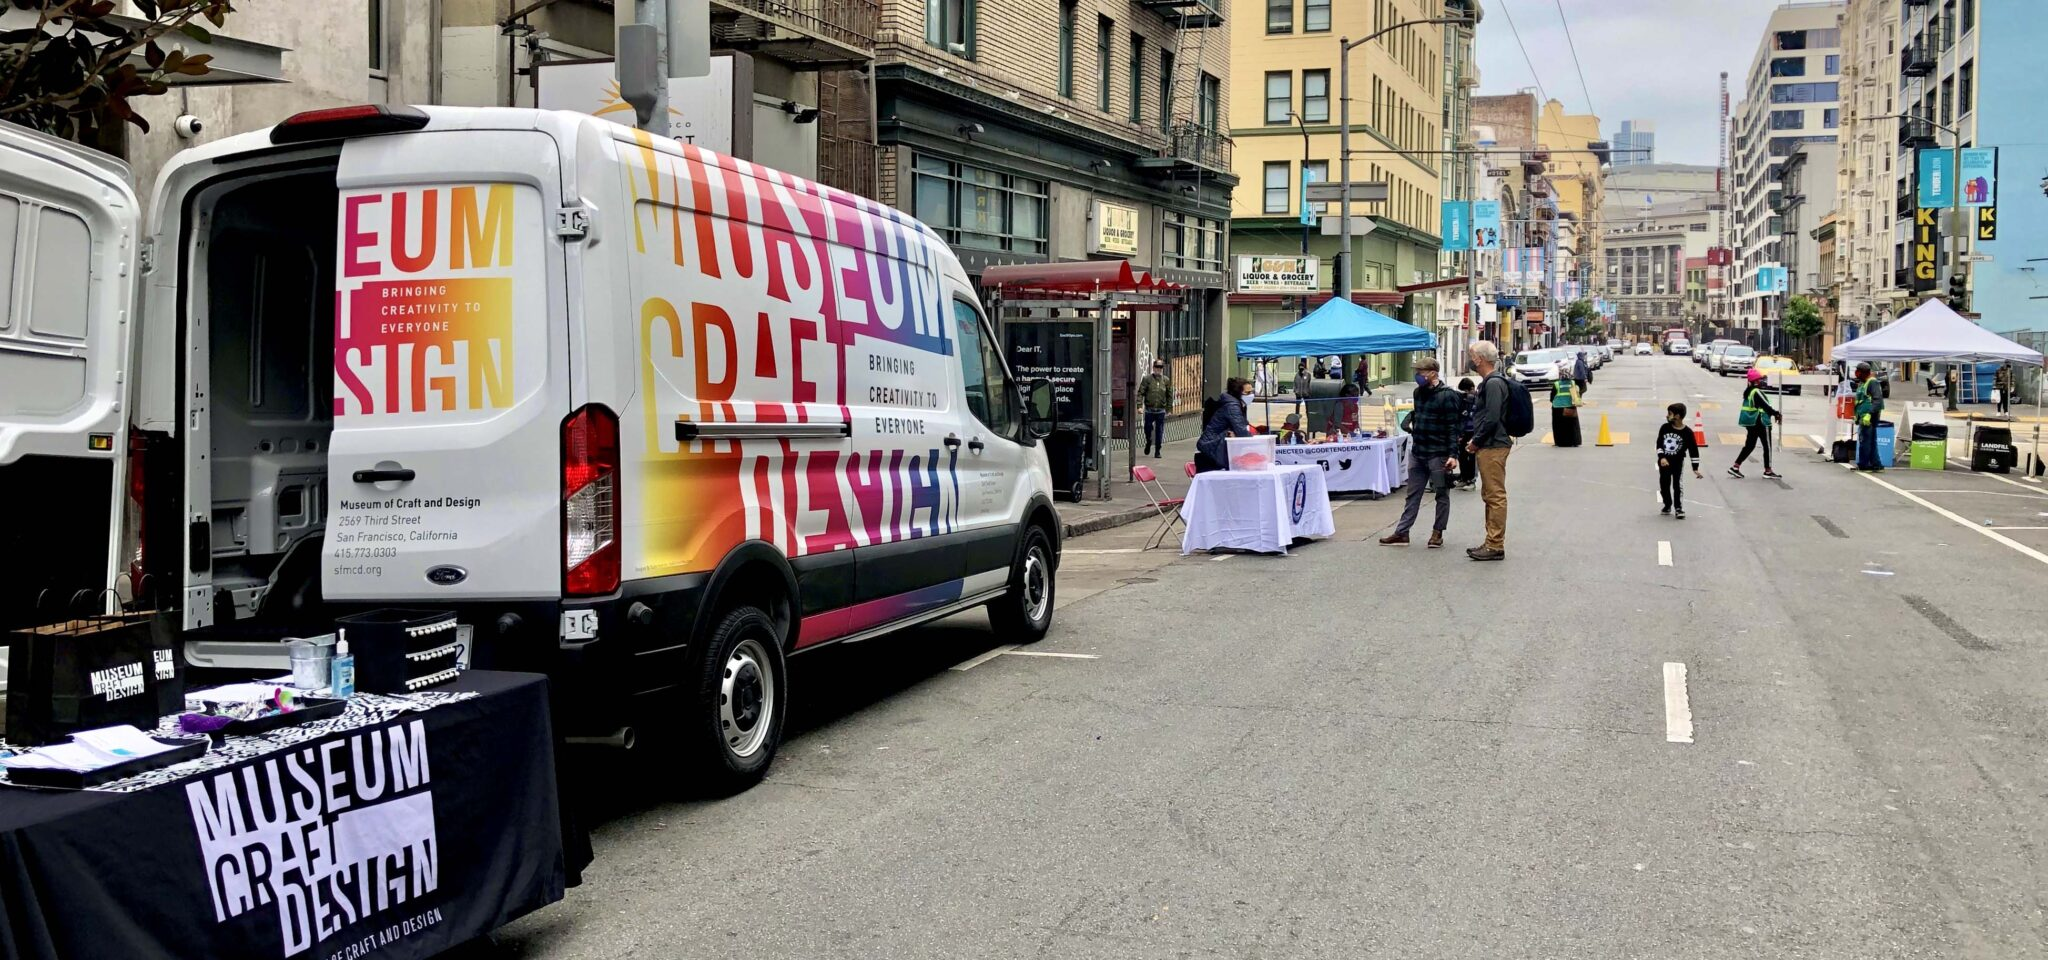 MakeArt van and table set up in street with people walking around